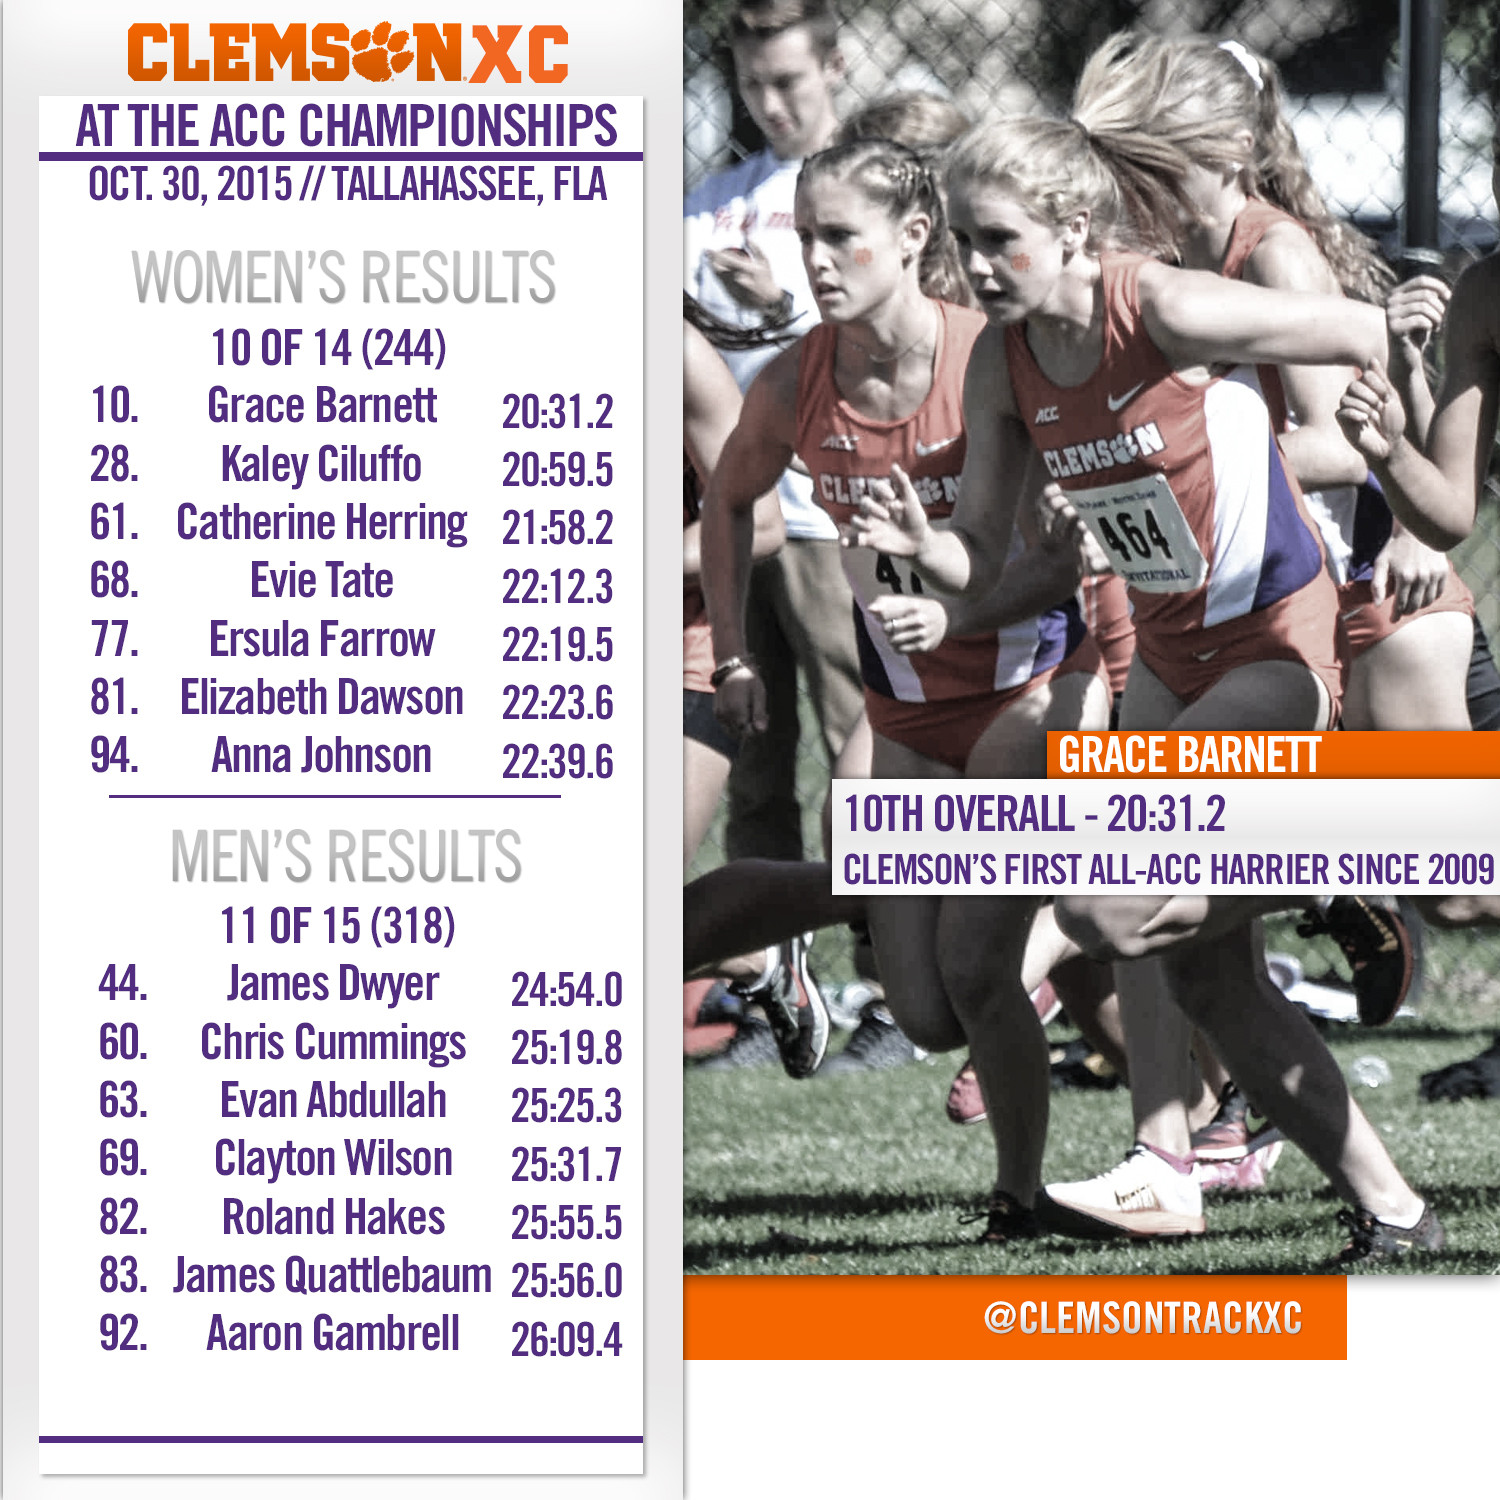 Grace Barnett Finishes 10th At ACC Championship